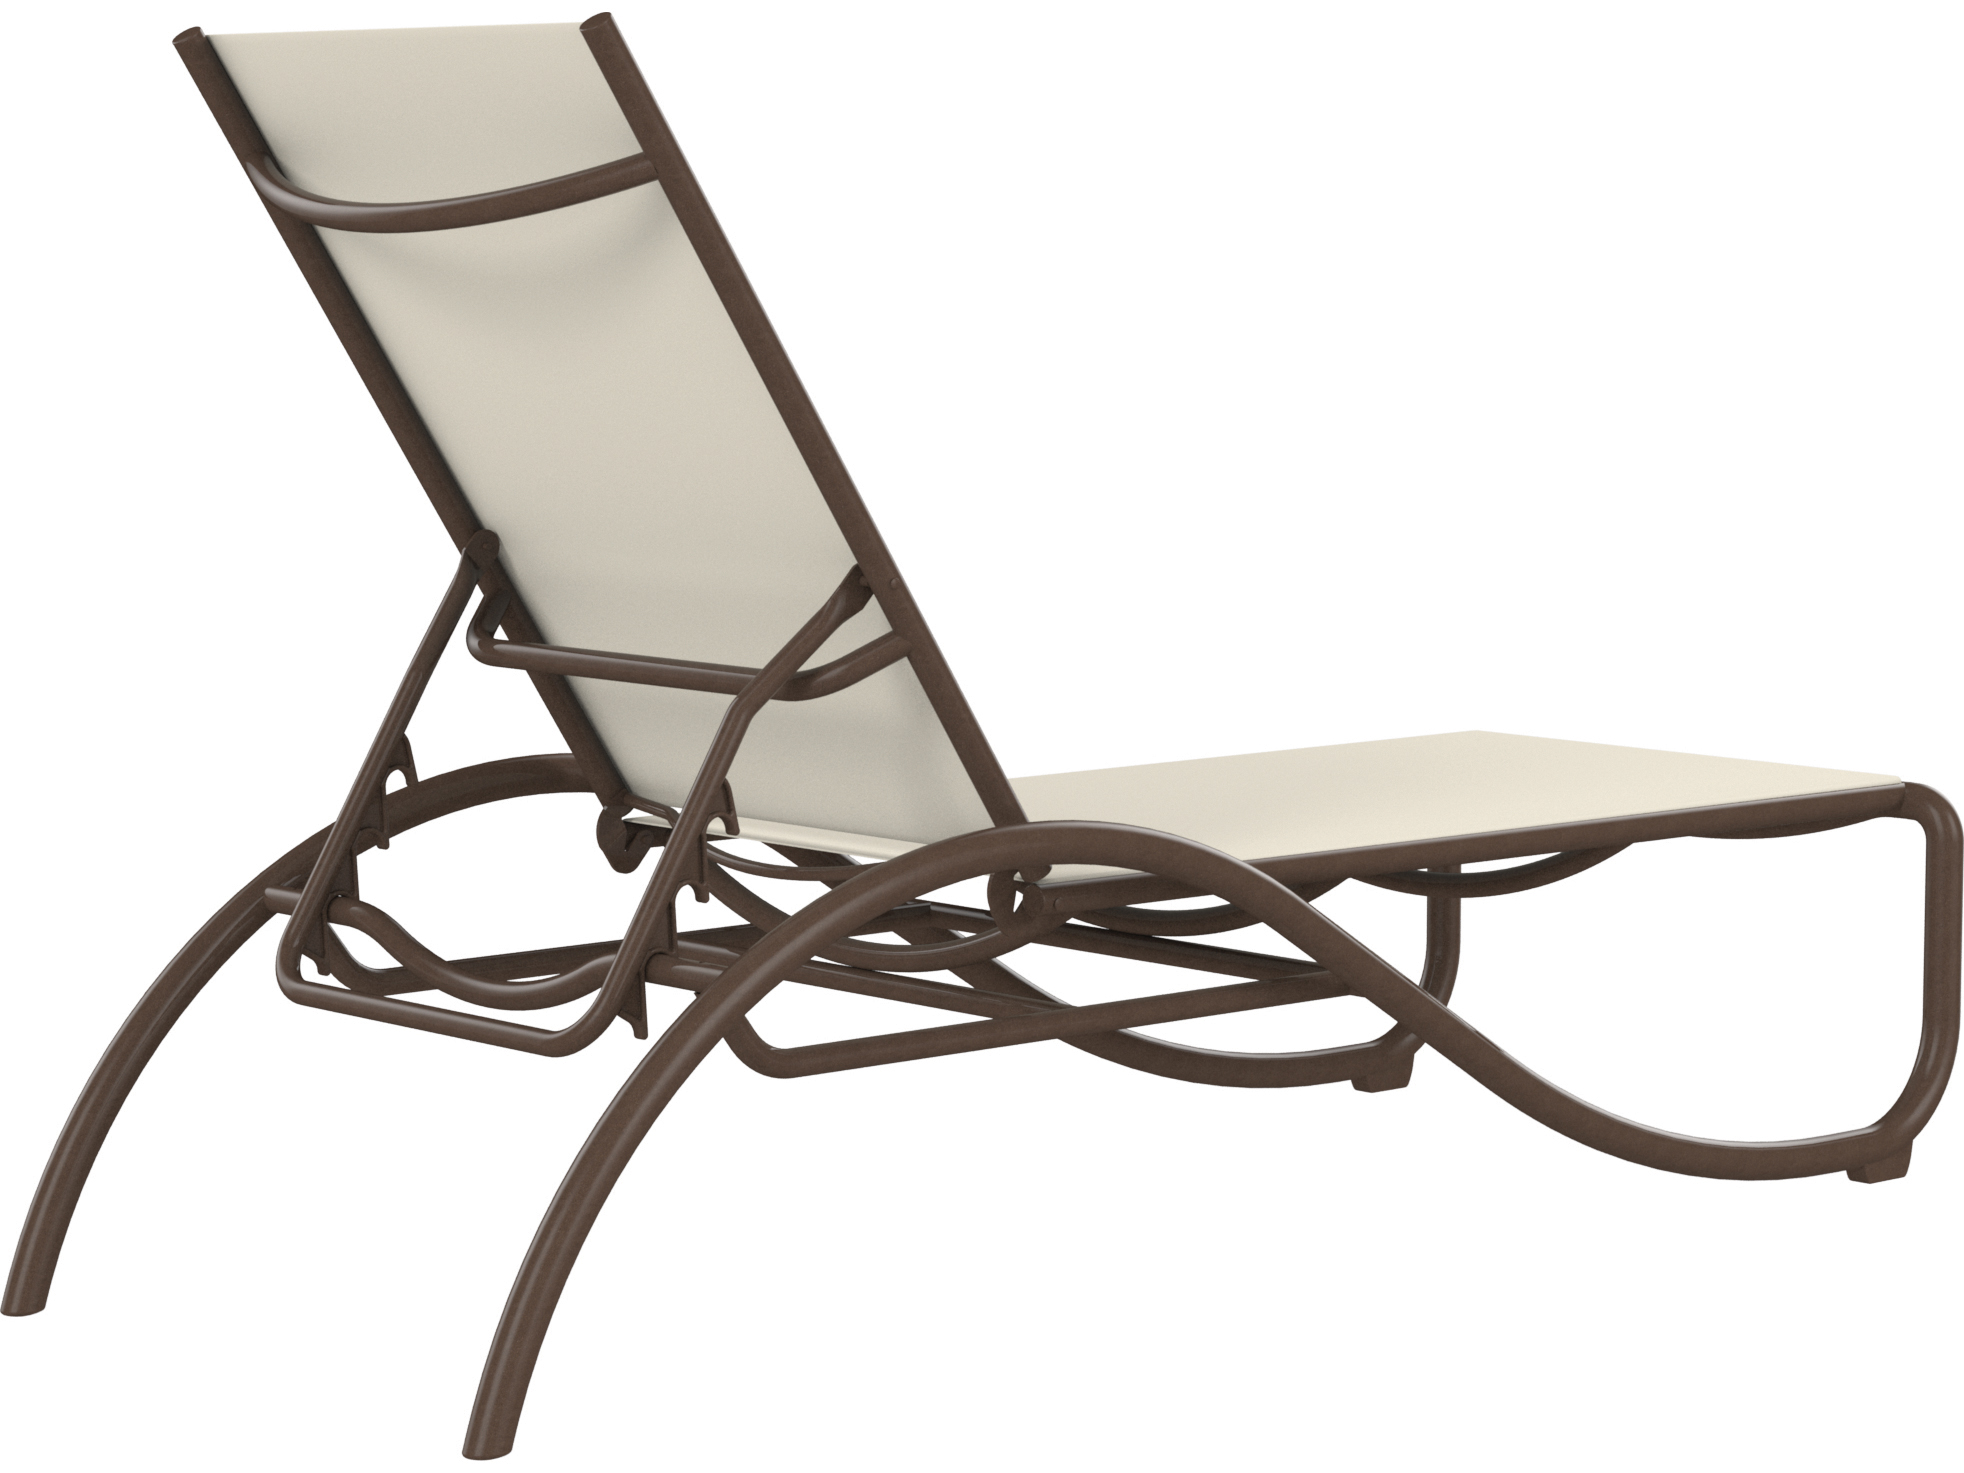 Tropitone la scala relaxed sling aluminum stackable chaise for Chaise lounge aluminum